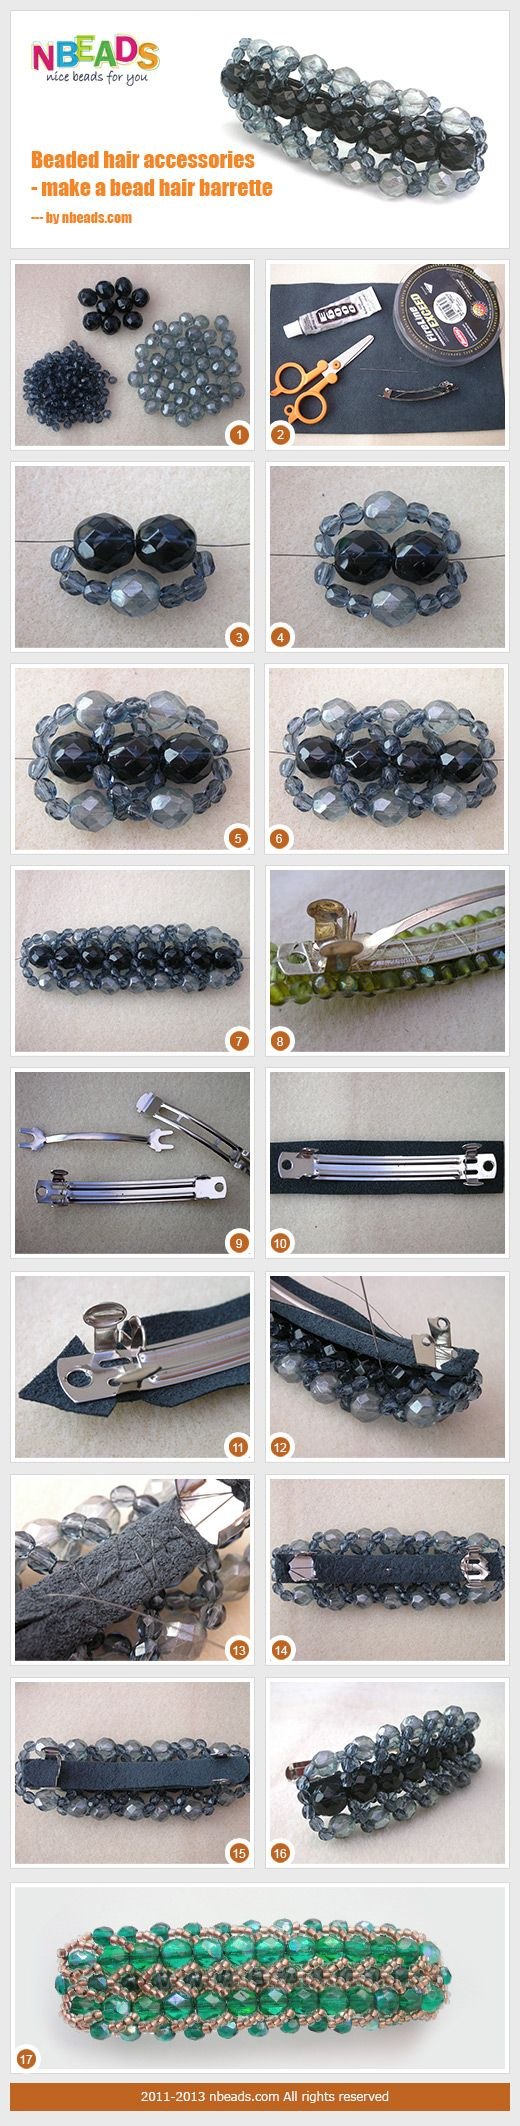 Summary: Here are hair barrettes for women. You can learn to make beaded hair accessories if you follow today's handicraft tutorial. I'll show you exactly what to do to make a chunky barrette. There are two ways to deal with the plain barrette. One is jus